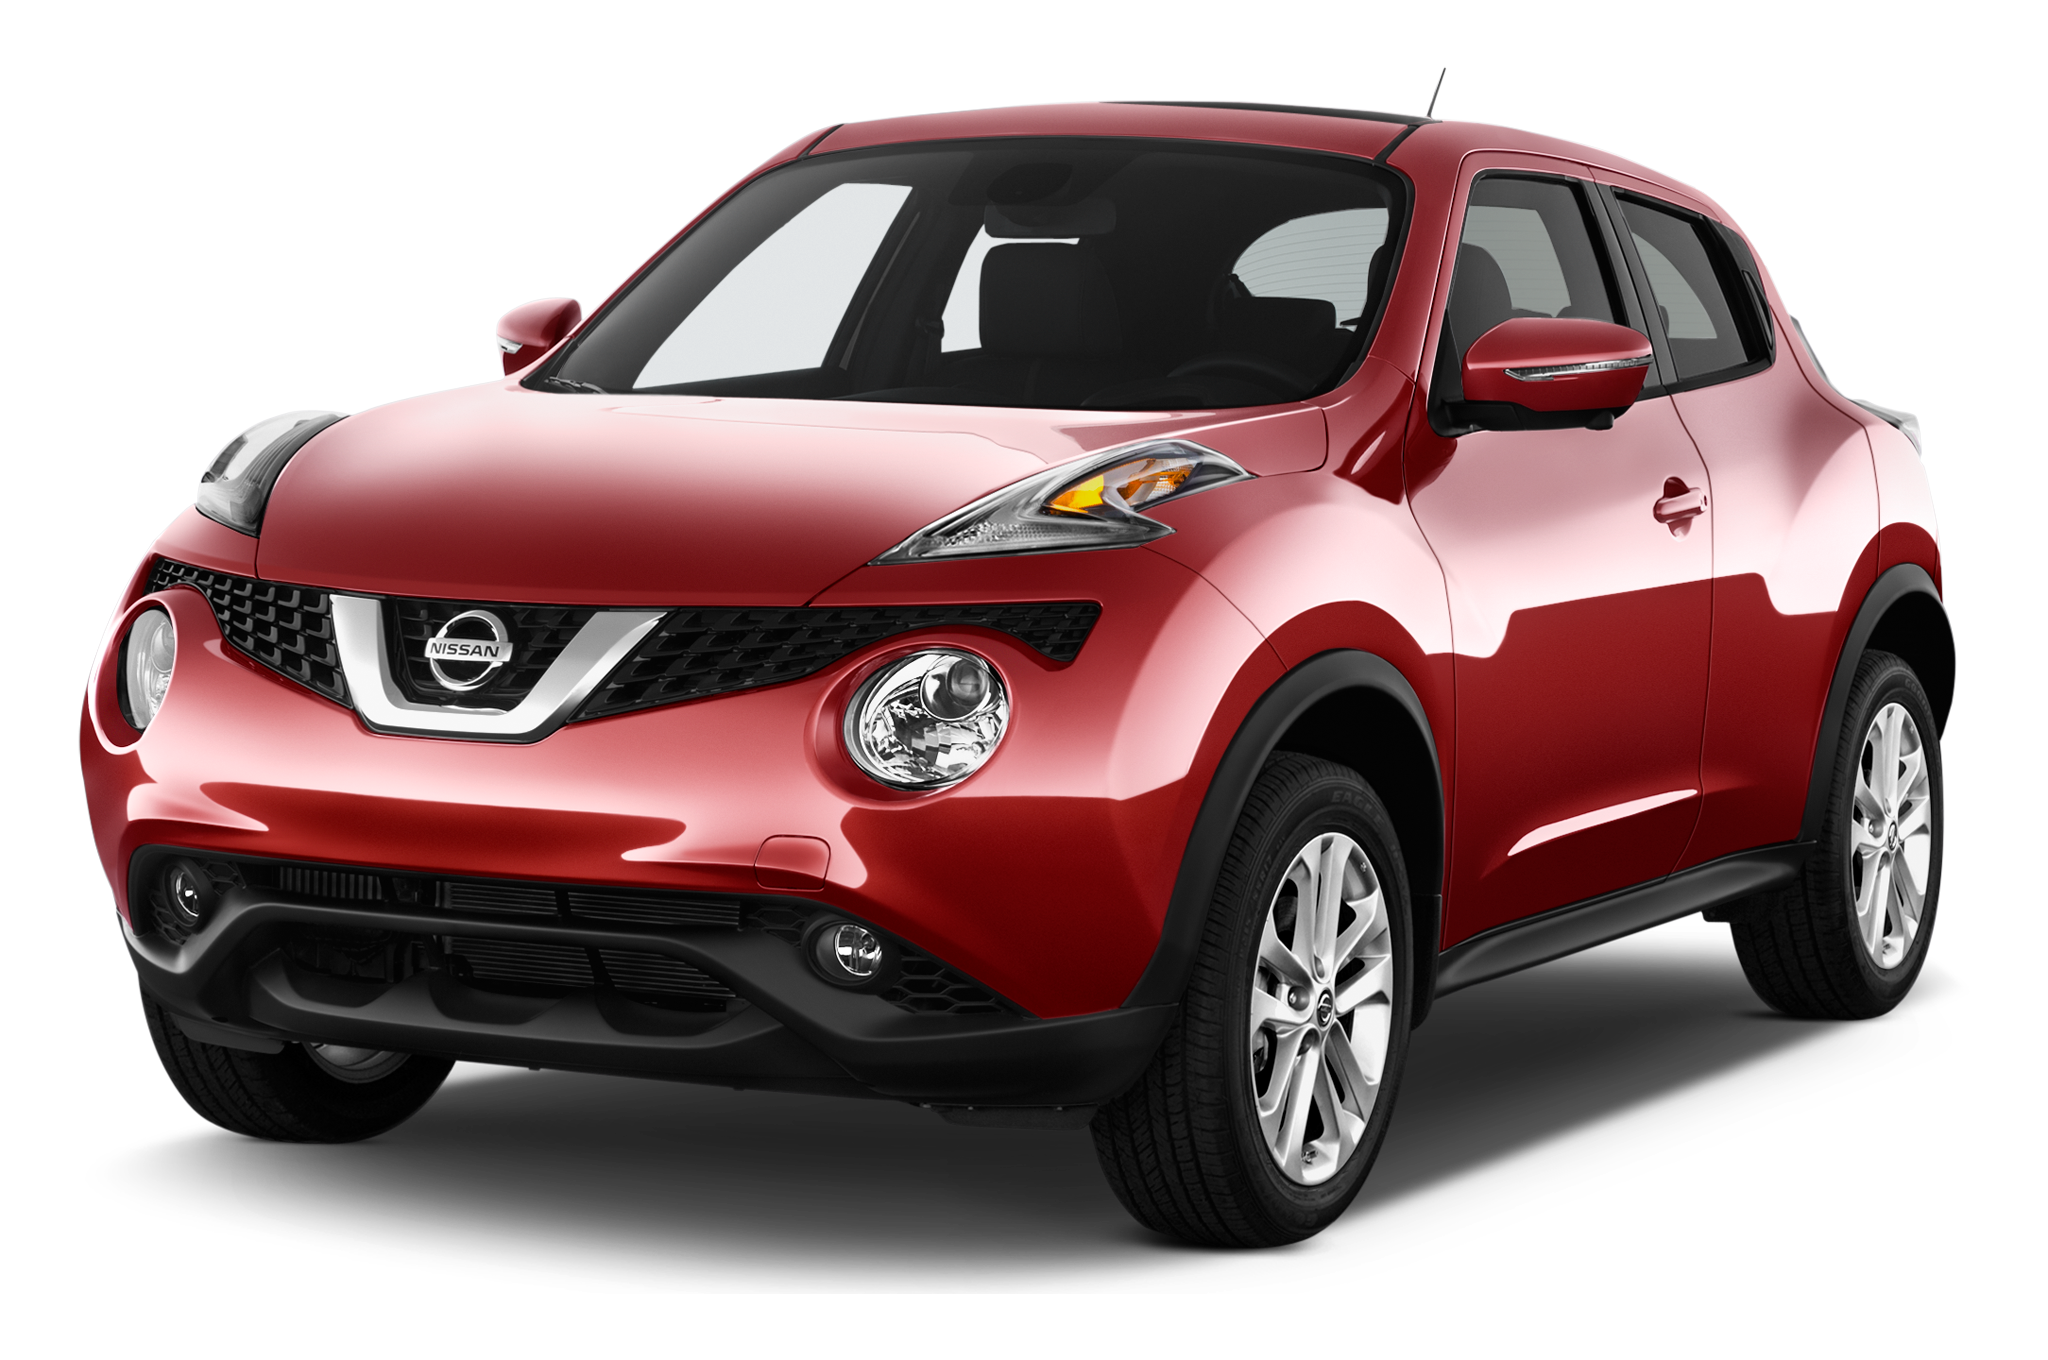 2015 nissan juke teased before 2014 geneva show automobile magazine. Black Bedroom Furniture Sets. Home Design Ideas